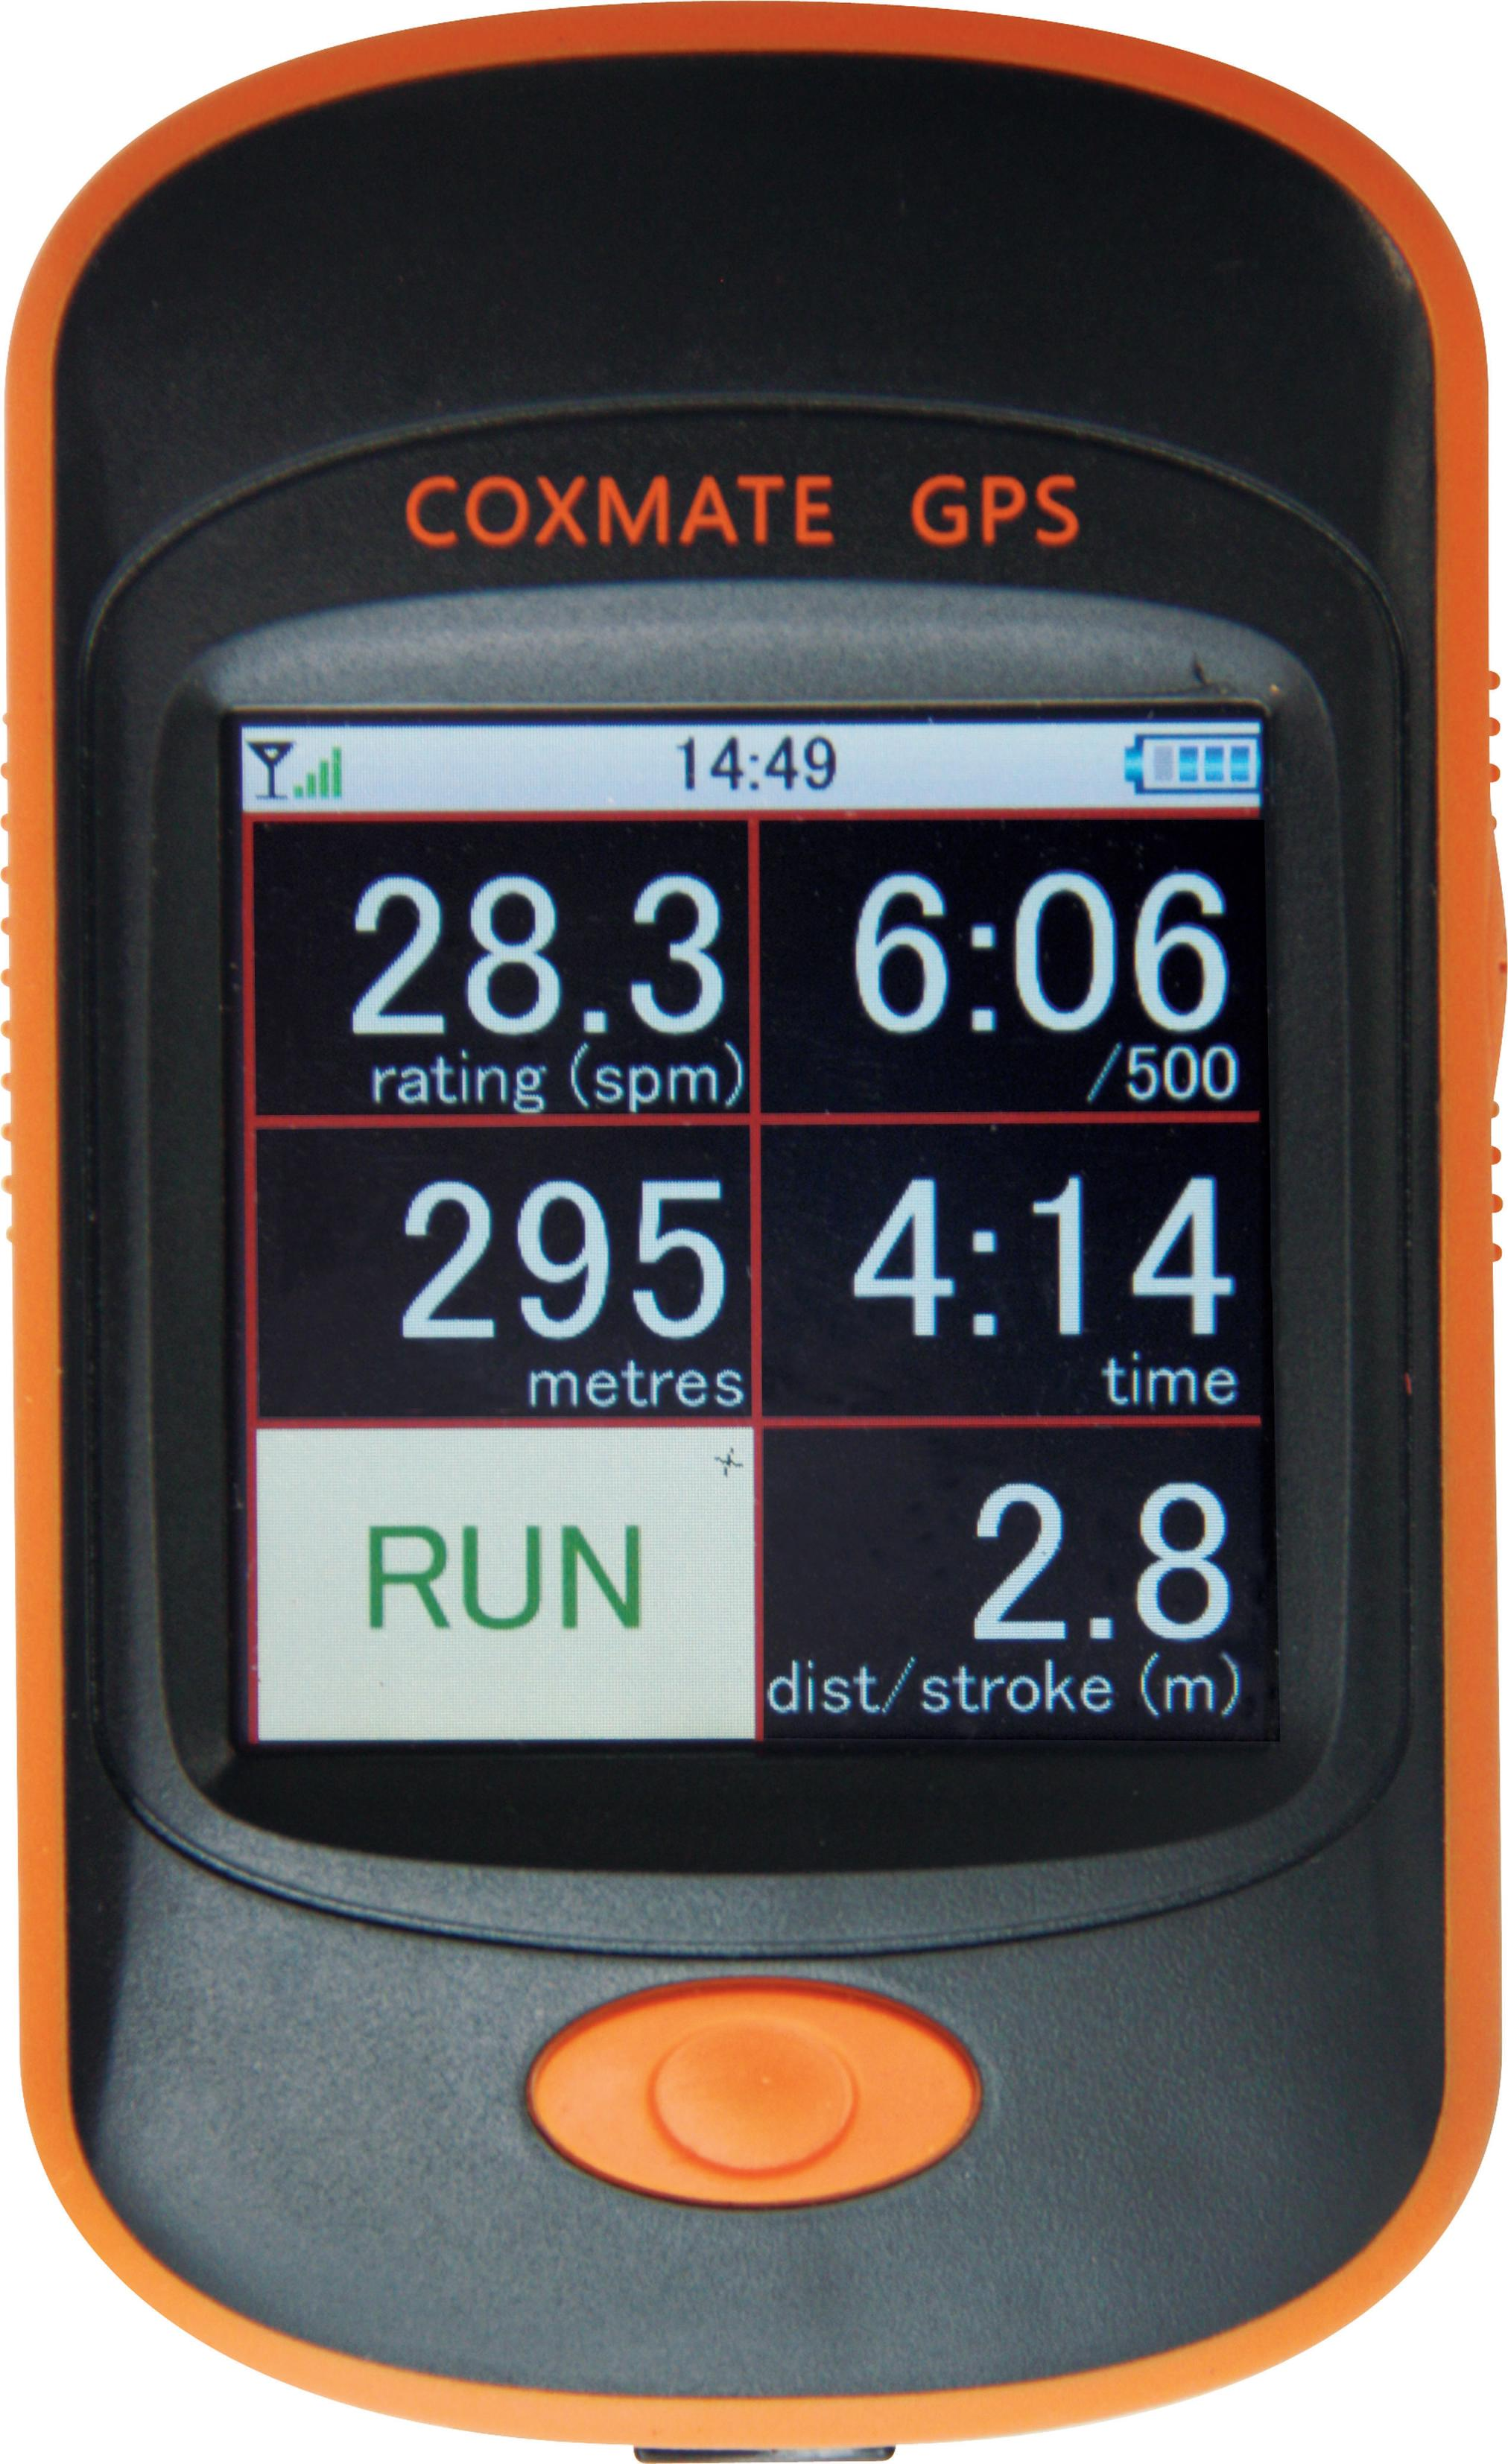 Rowperfect Coxmate GPS – a Luddite is won over